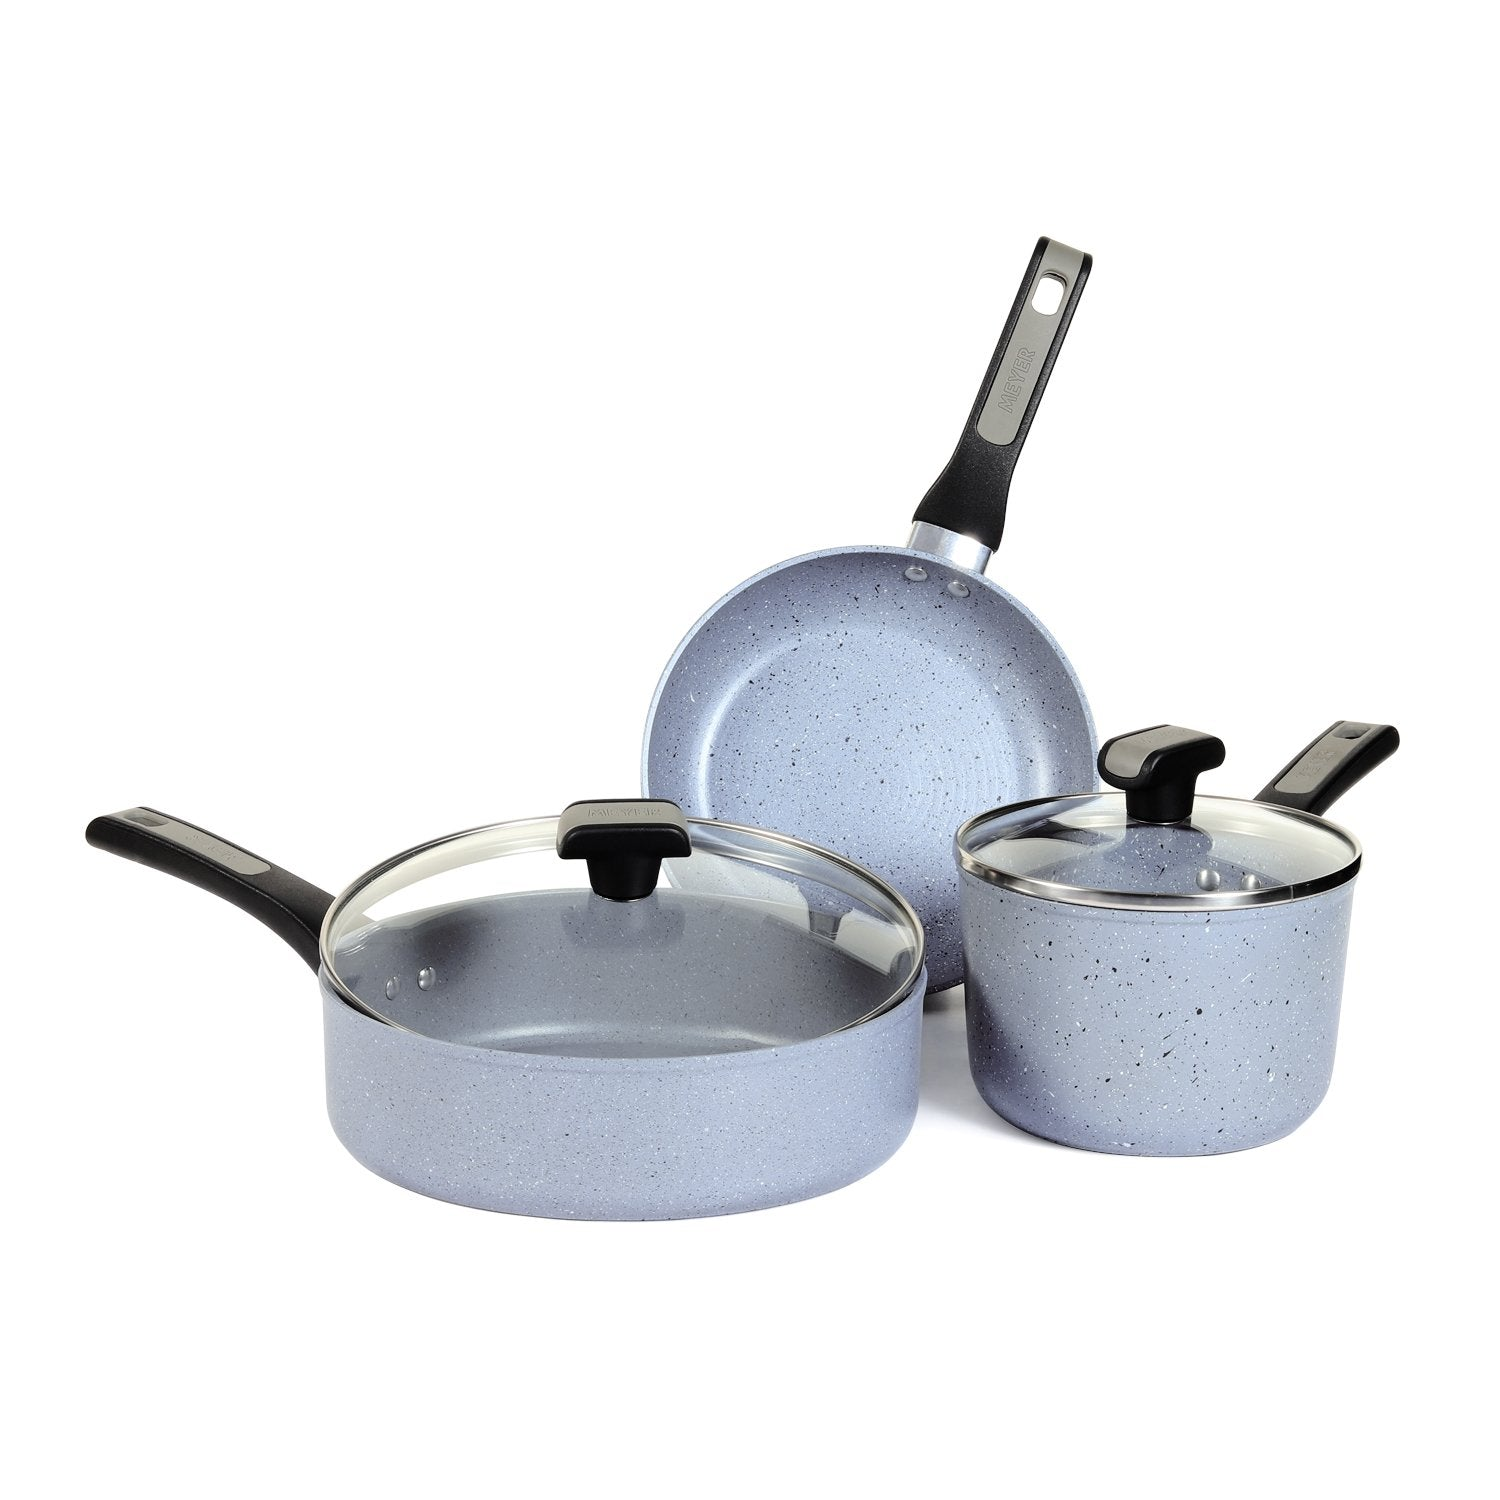 Forgestone Non-Stick 5-Piece(Saute Pan + Frypan + Saucepan) Cookware Set,Stone Grey [Induction & Gas Compatible] - PotsandPans